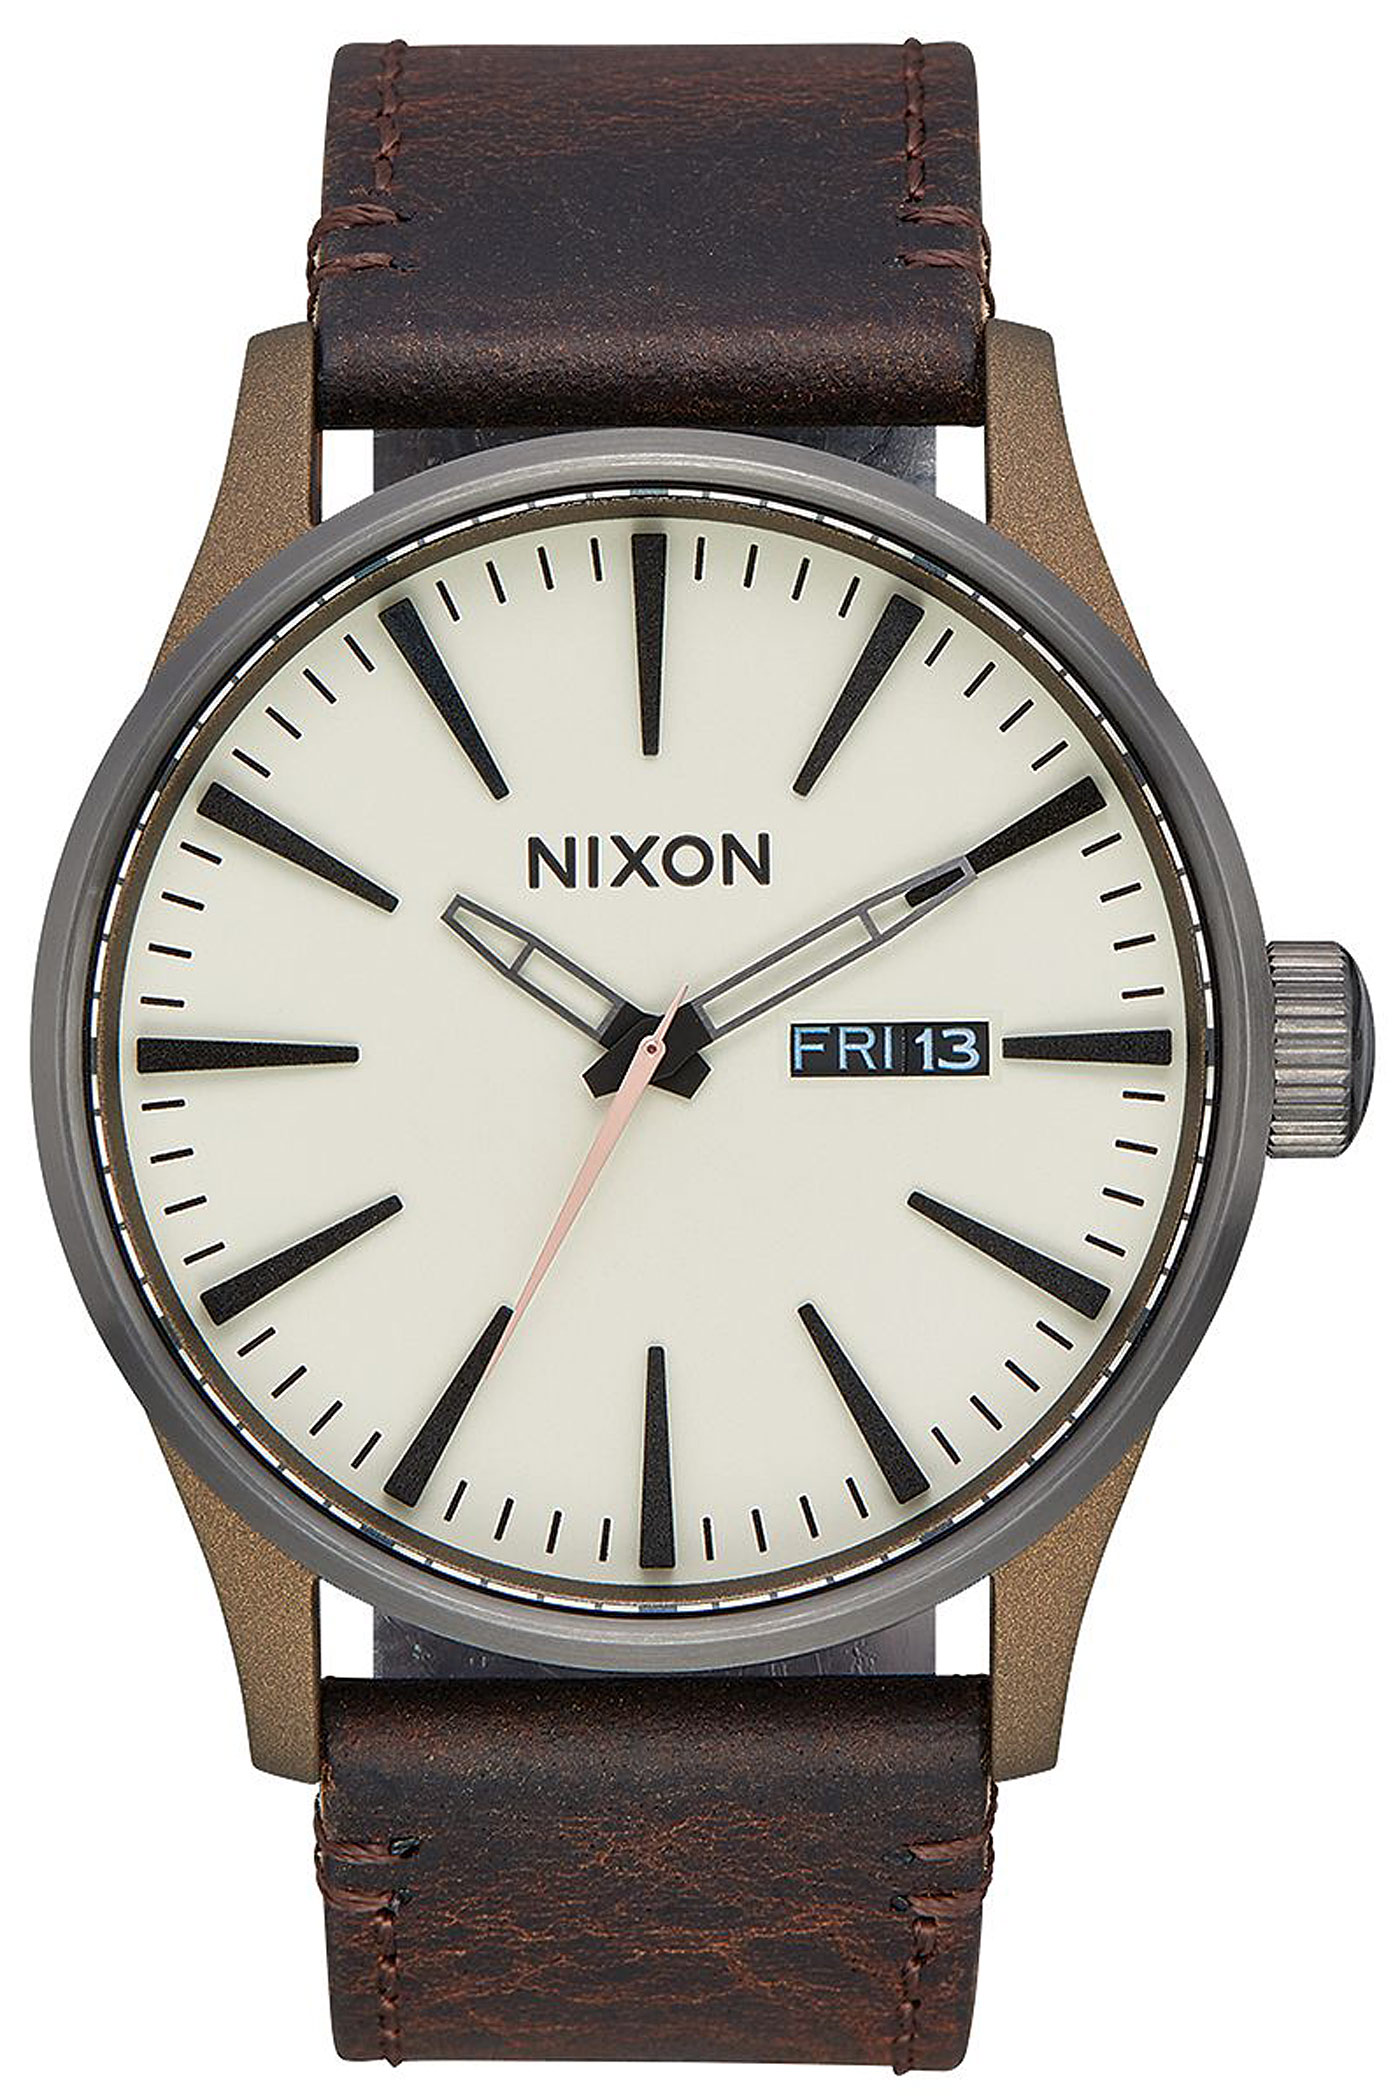 nixon the sentry leather uhr bronze gunmetal kaufen bei skatedeluxe. Black Bedroom Furniture Sets. Home Design Ideas